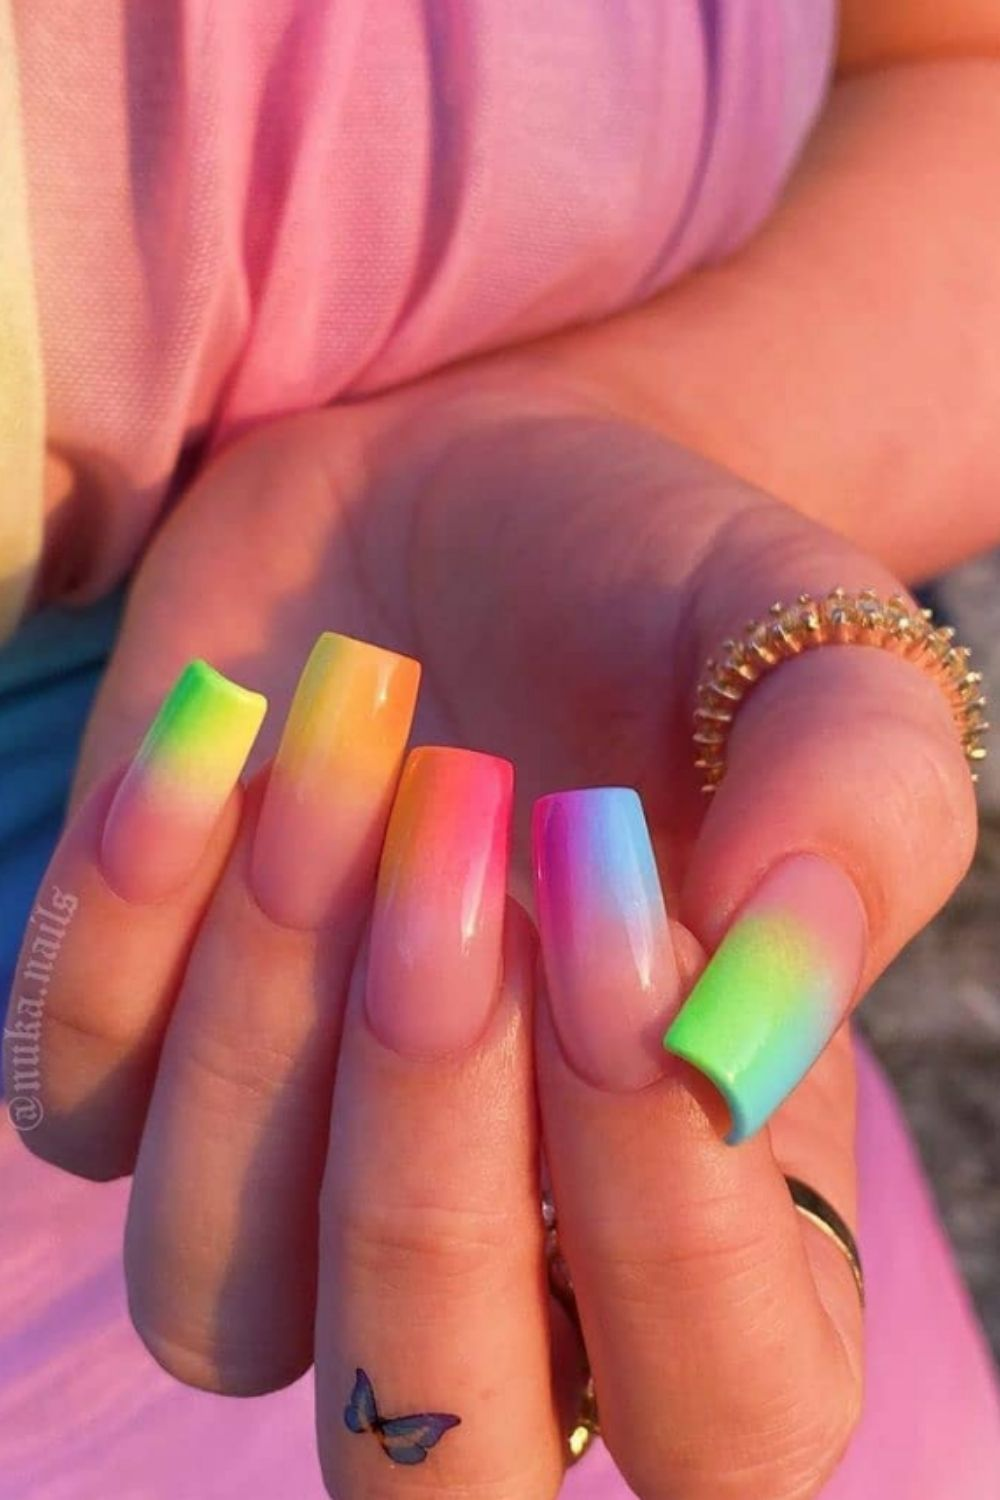 Short coffin nails | All the 2021 Nail Trends You'll Want to Wear ASAP